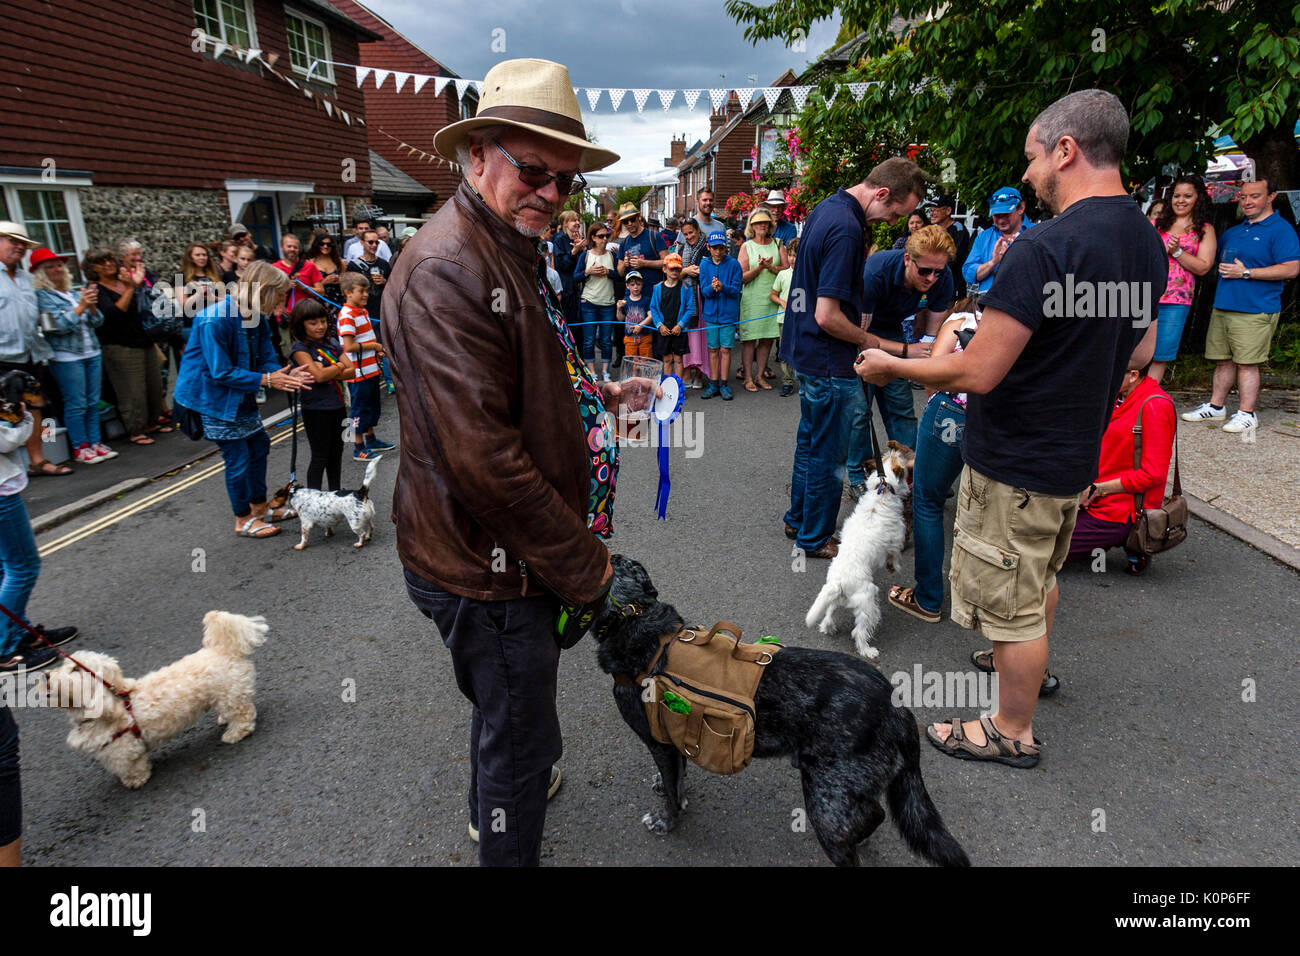 Dogs Being Judged At The Annual South Street Sports Day and Dog Show, Lewes, East Sussex, UK - Stock Image